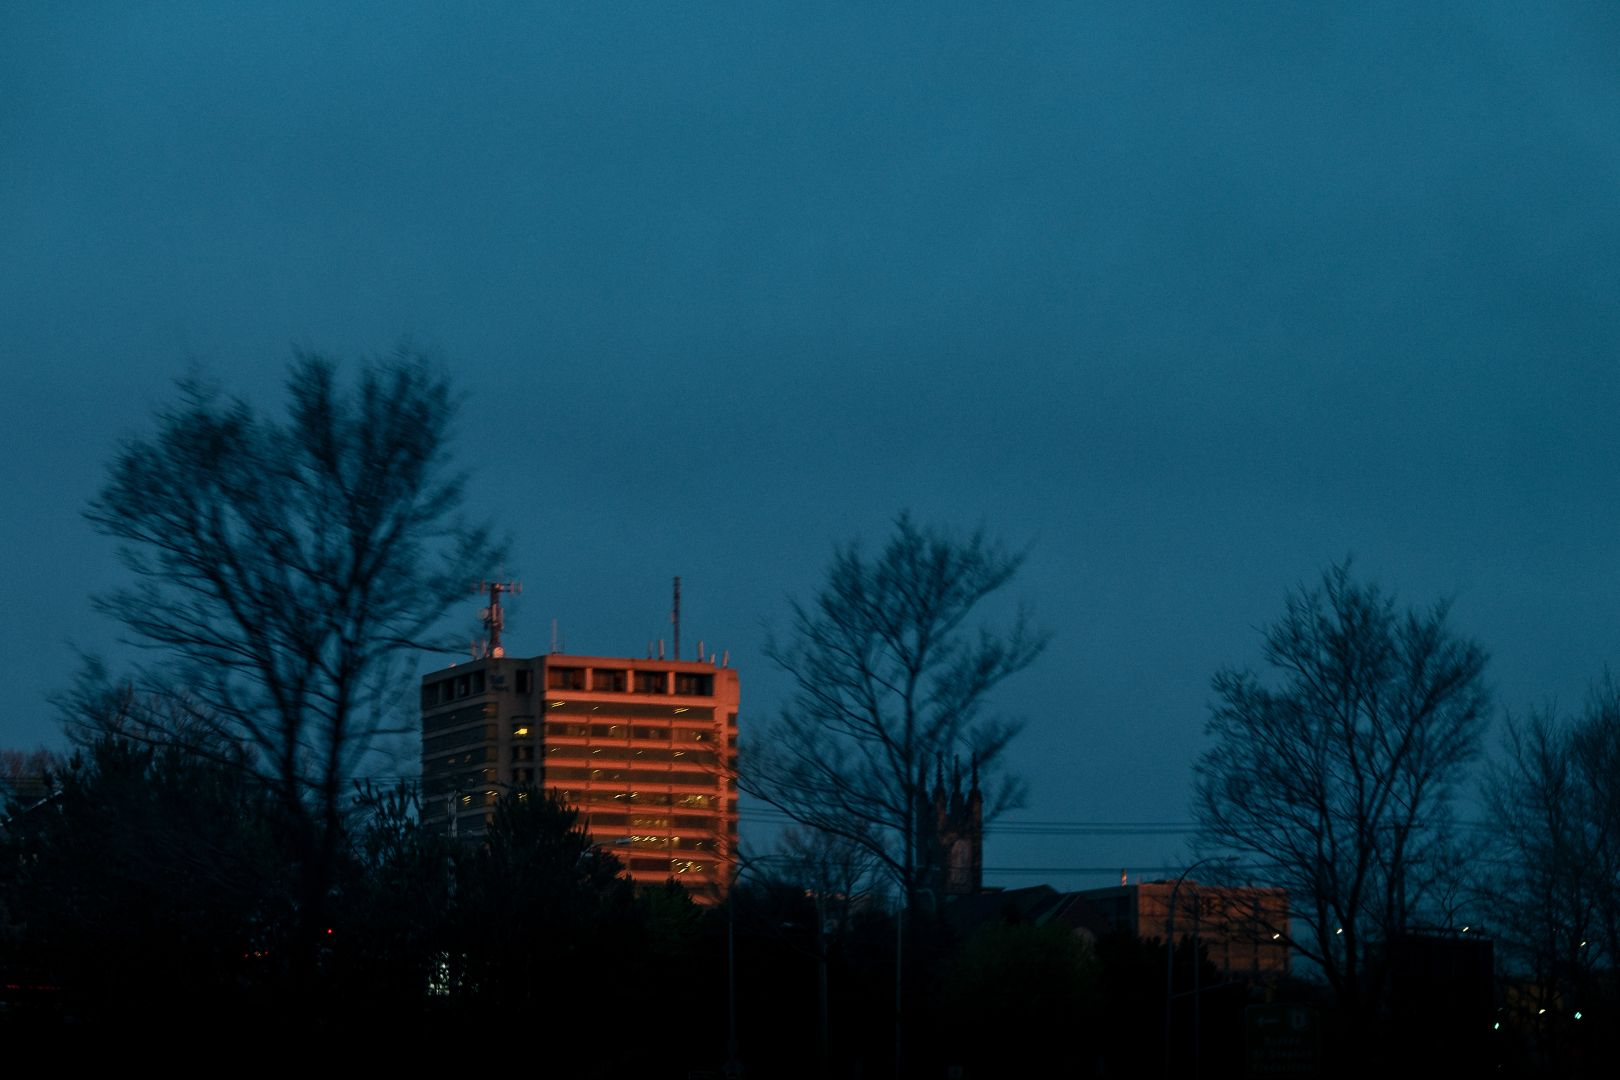 A photo of Bell Aliant Building Through Trees at Dusk